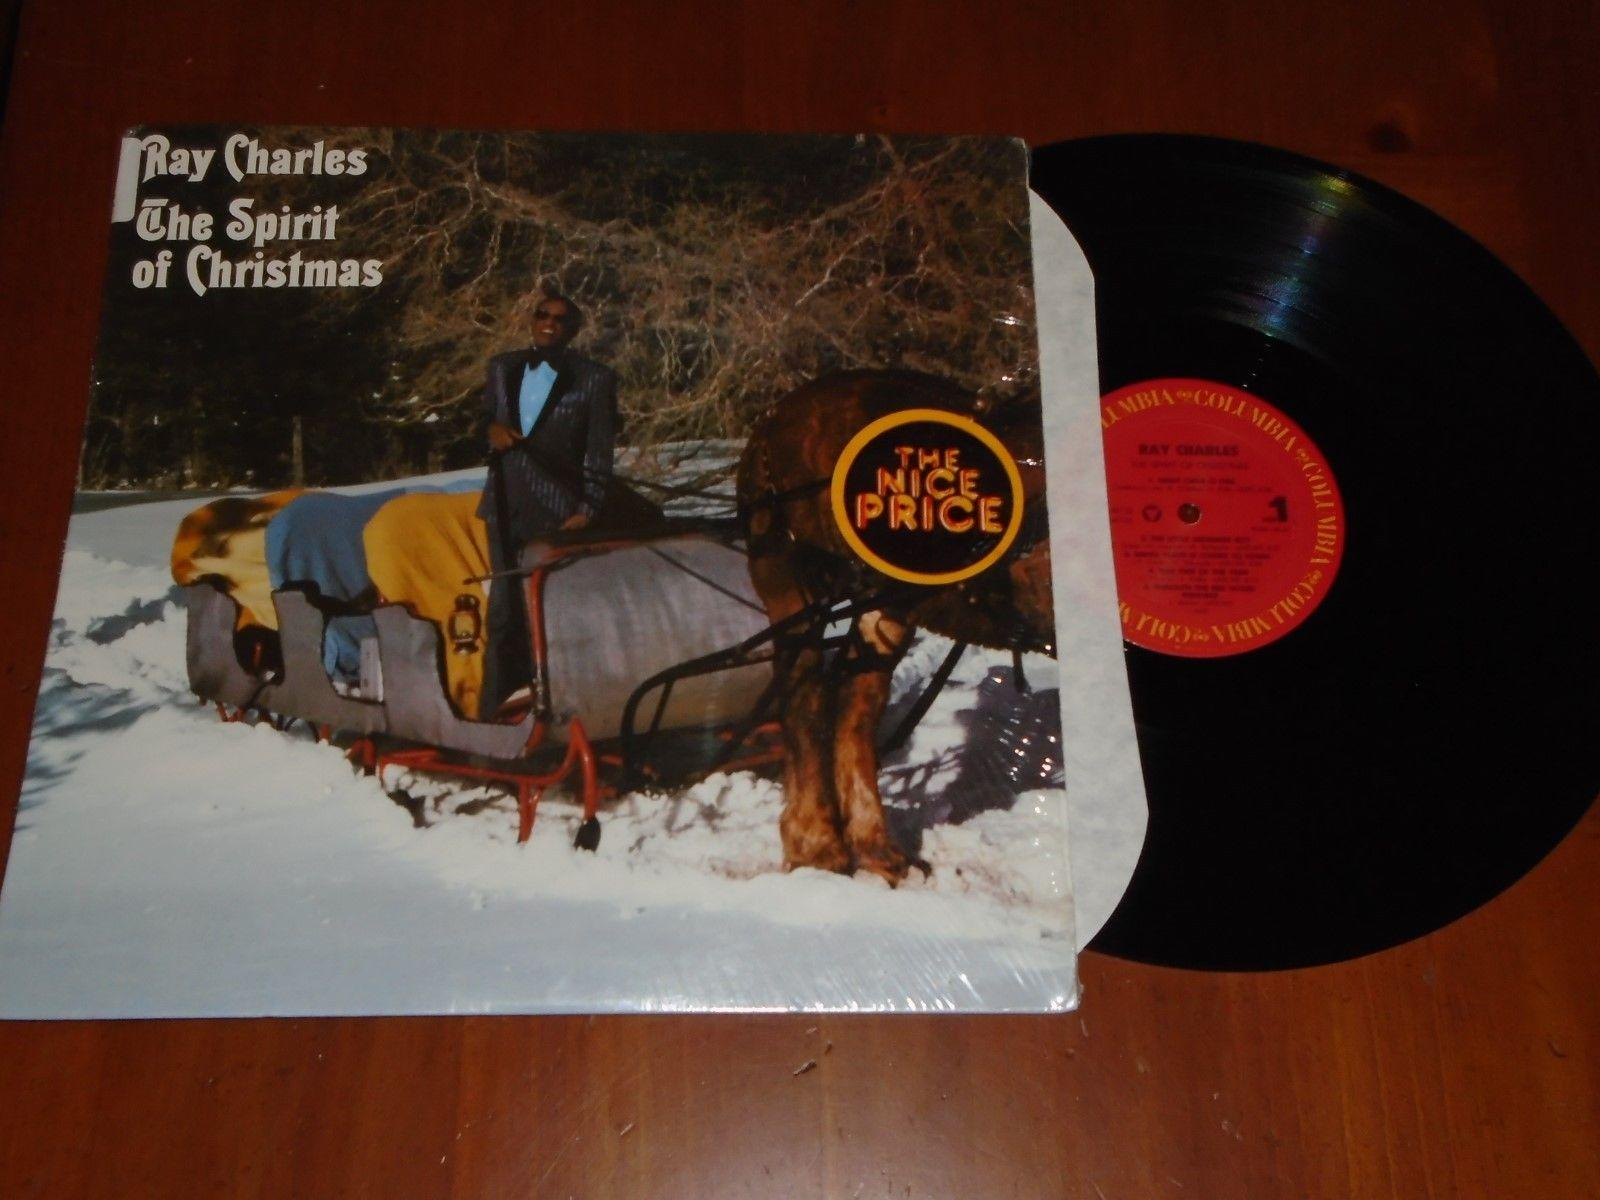 lp RAY CHARLES The Spirit of Christmas NM IN SHRINK